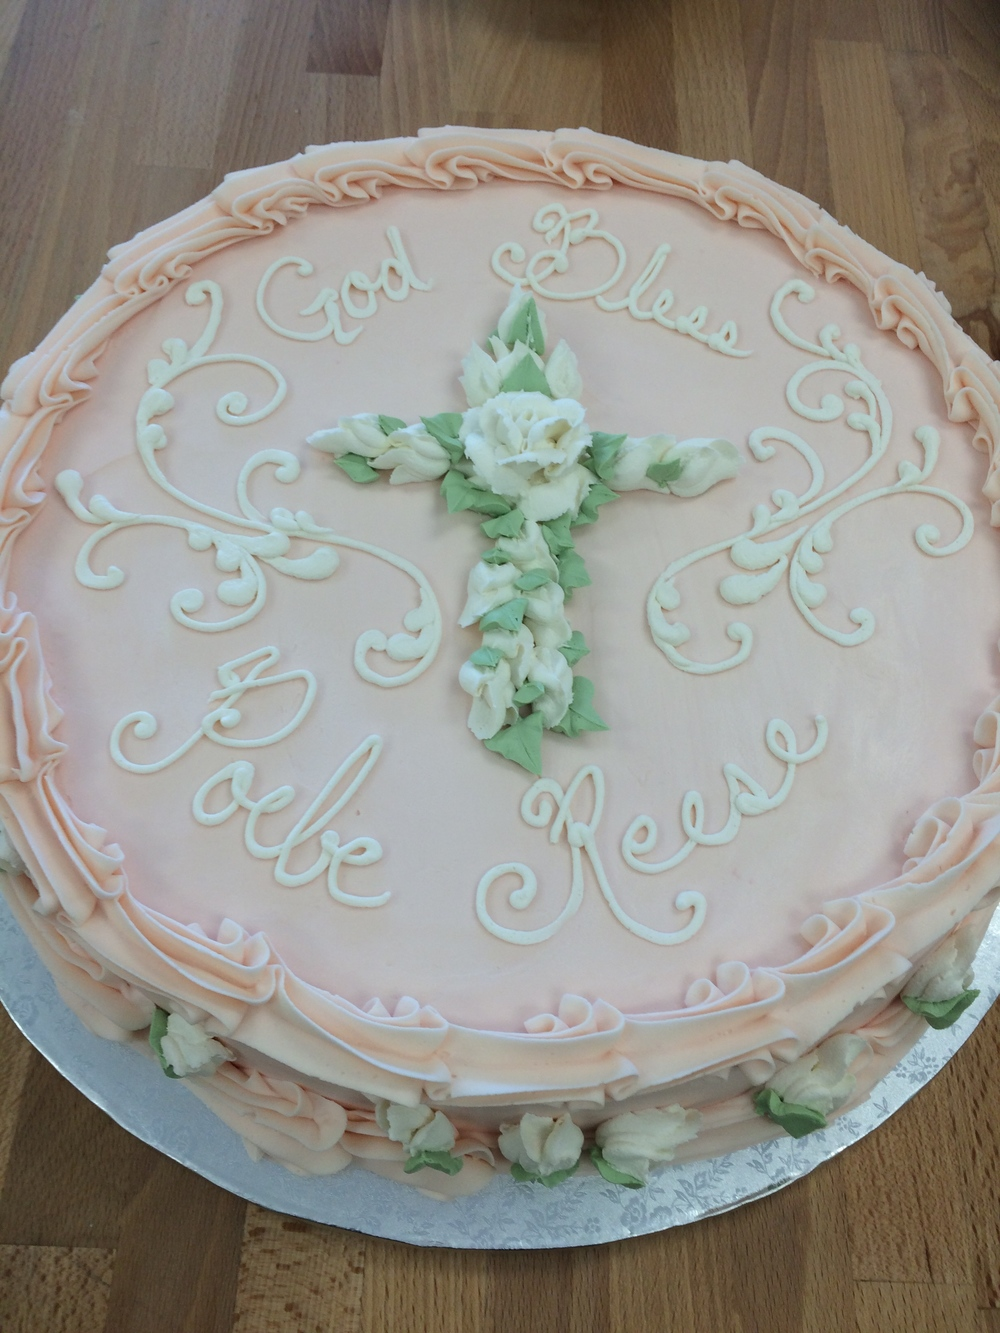 Cross of Roses Cake